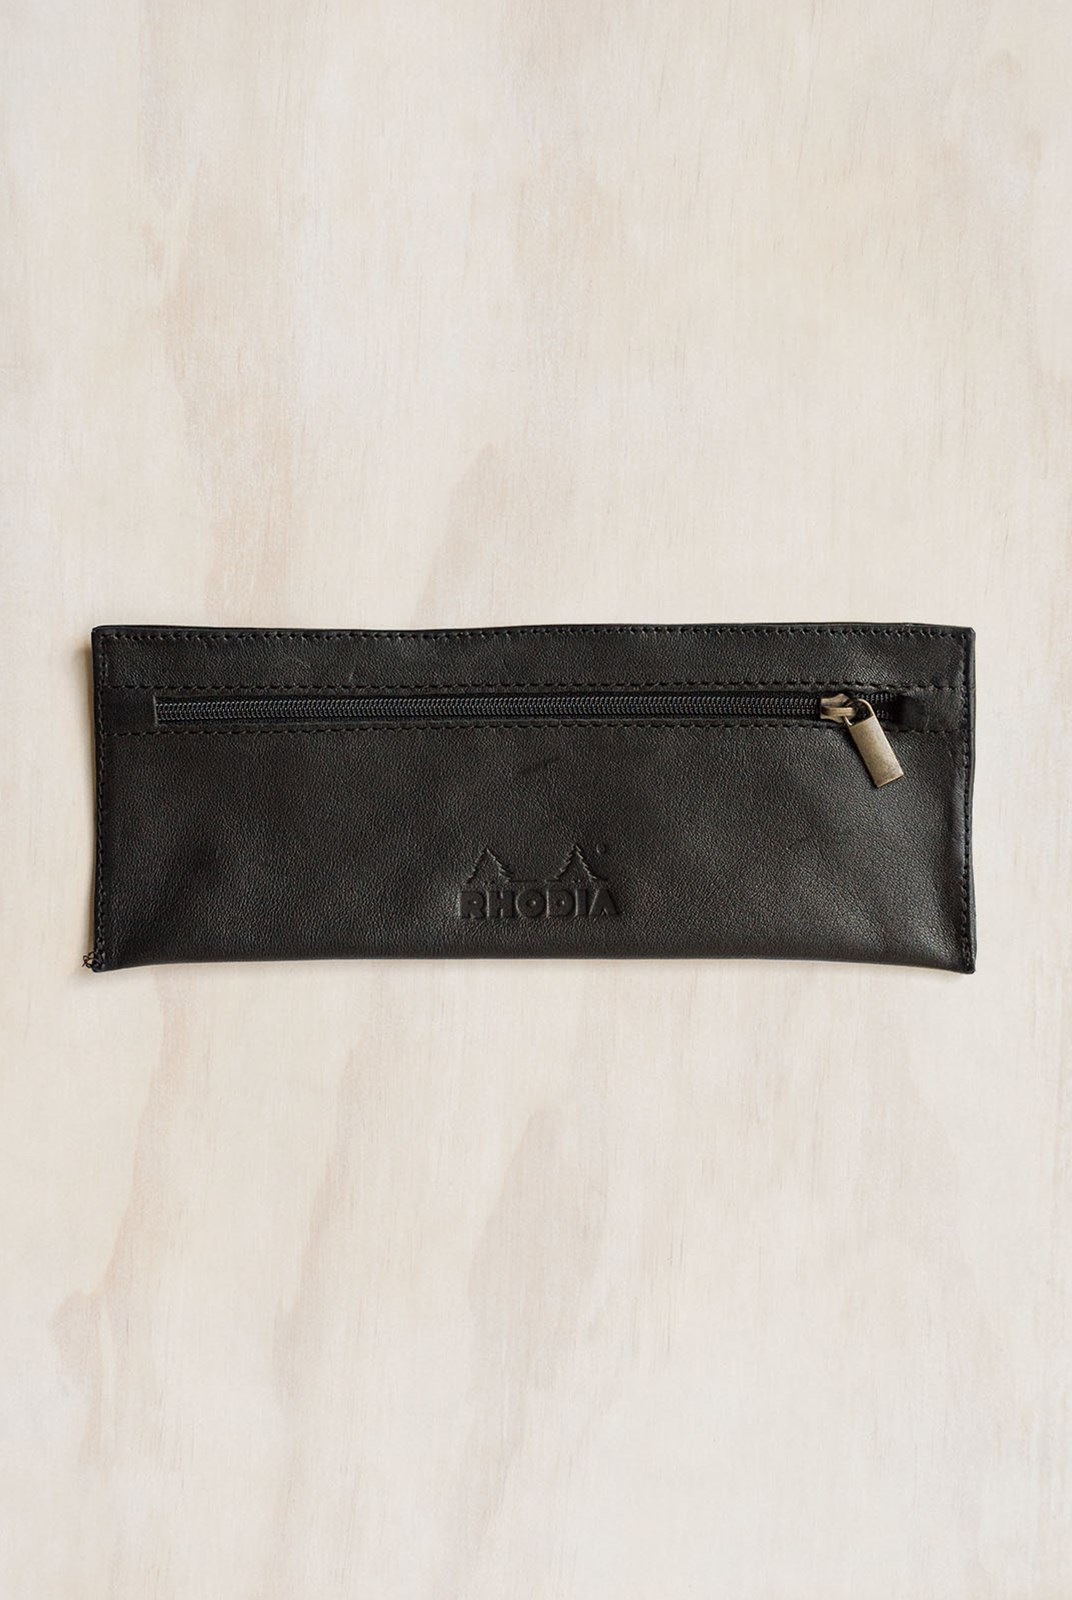 Rhodia - Leather Pencil Case - Black